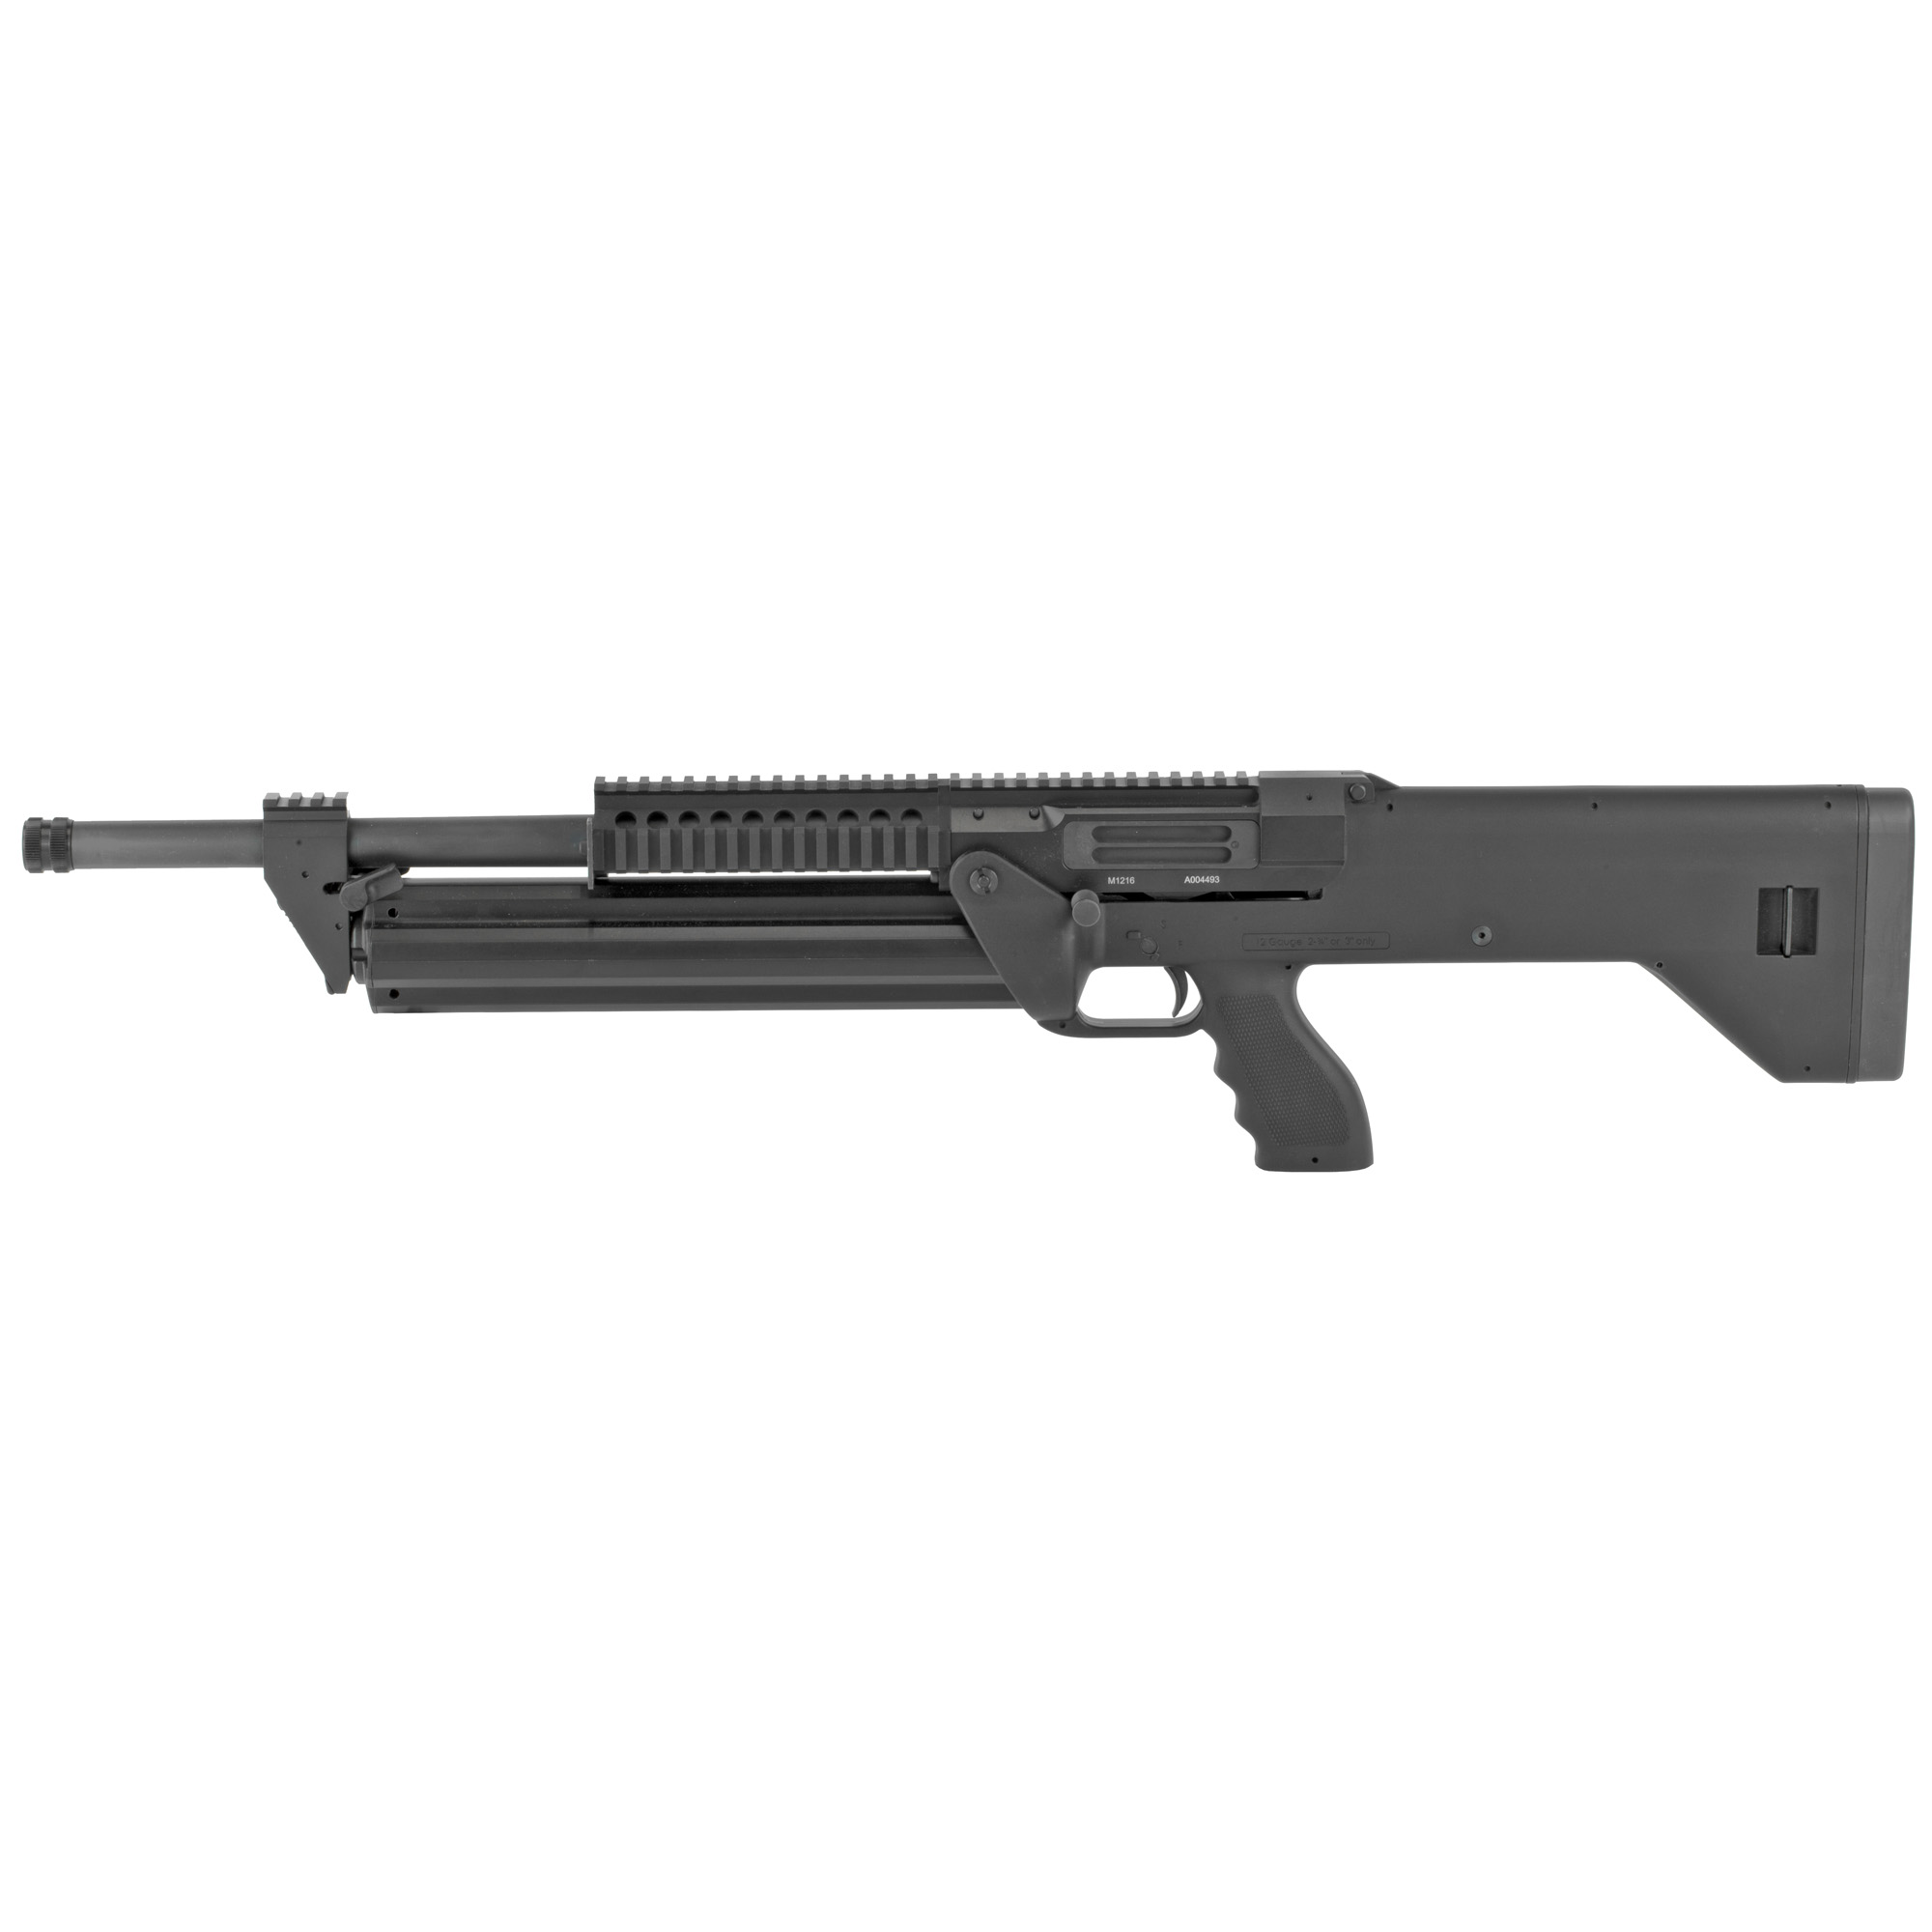 """The SRM 1216 features a revolving magazine"""" ambidextrous receiver and controls"""" pushpin dissassembly and roller delayed action that provides fast cycling and reduced felt recoil."""